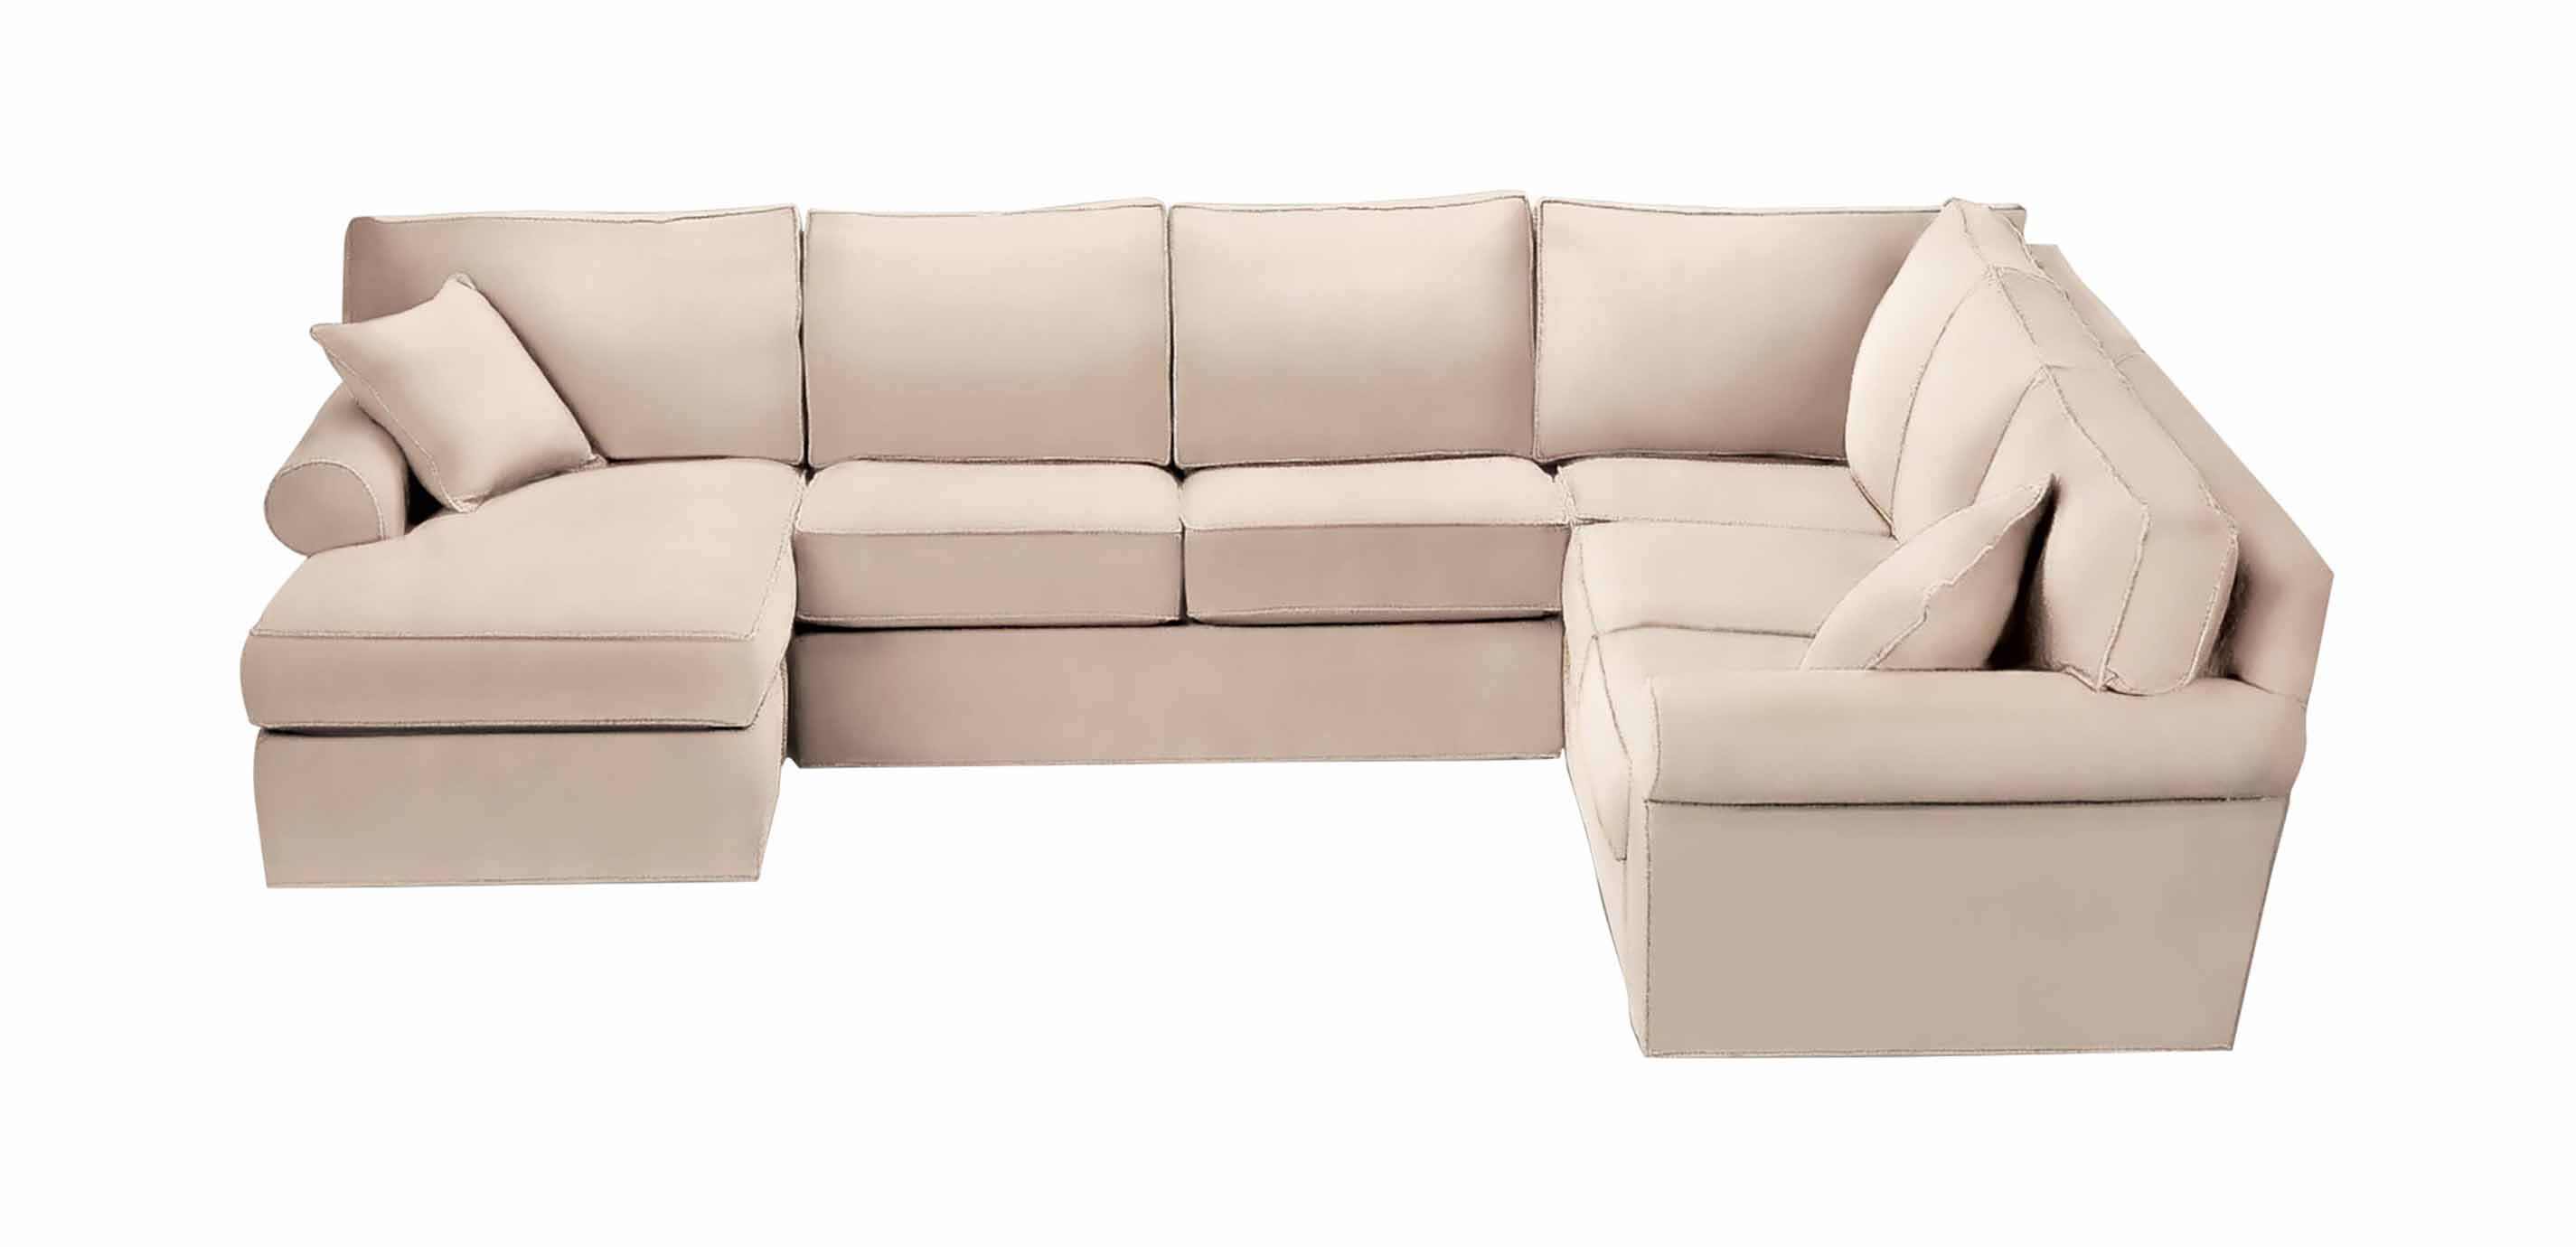 Top 20 Ethan Allen Whitney Sofas | Sofa Ideas